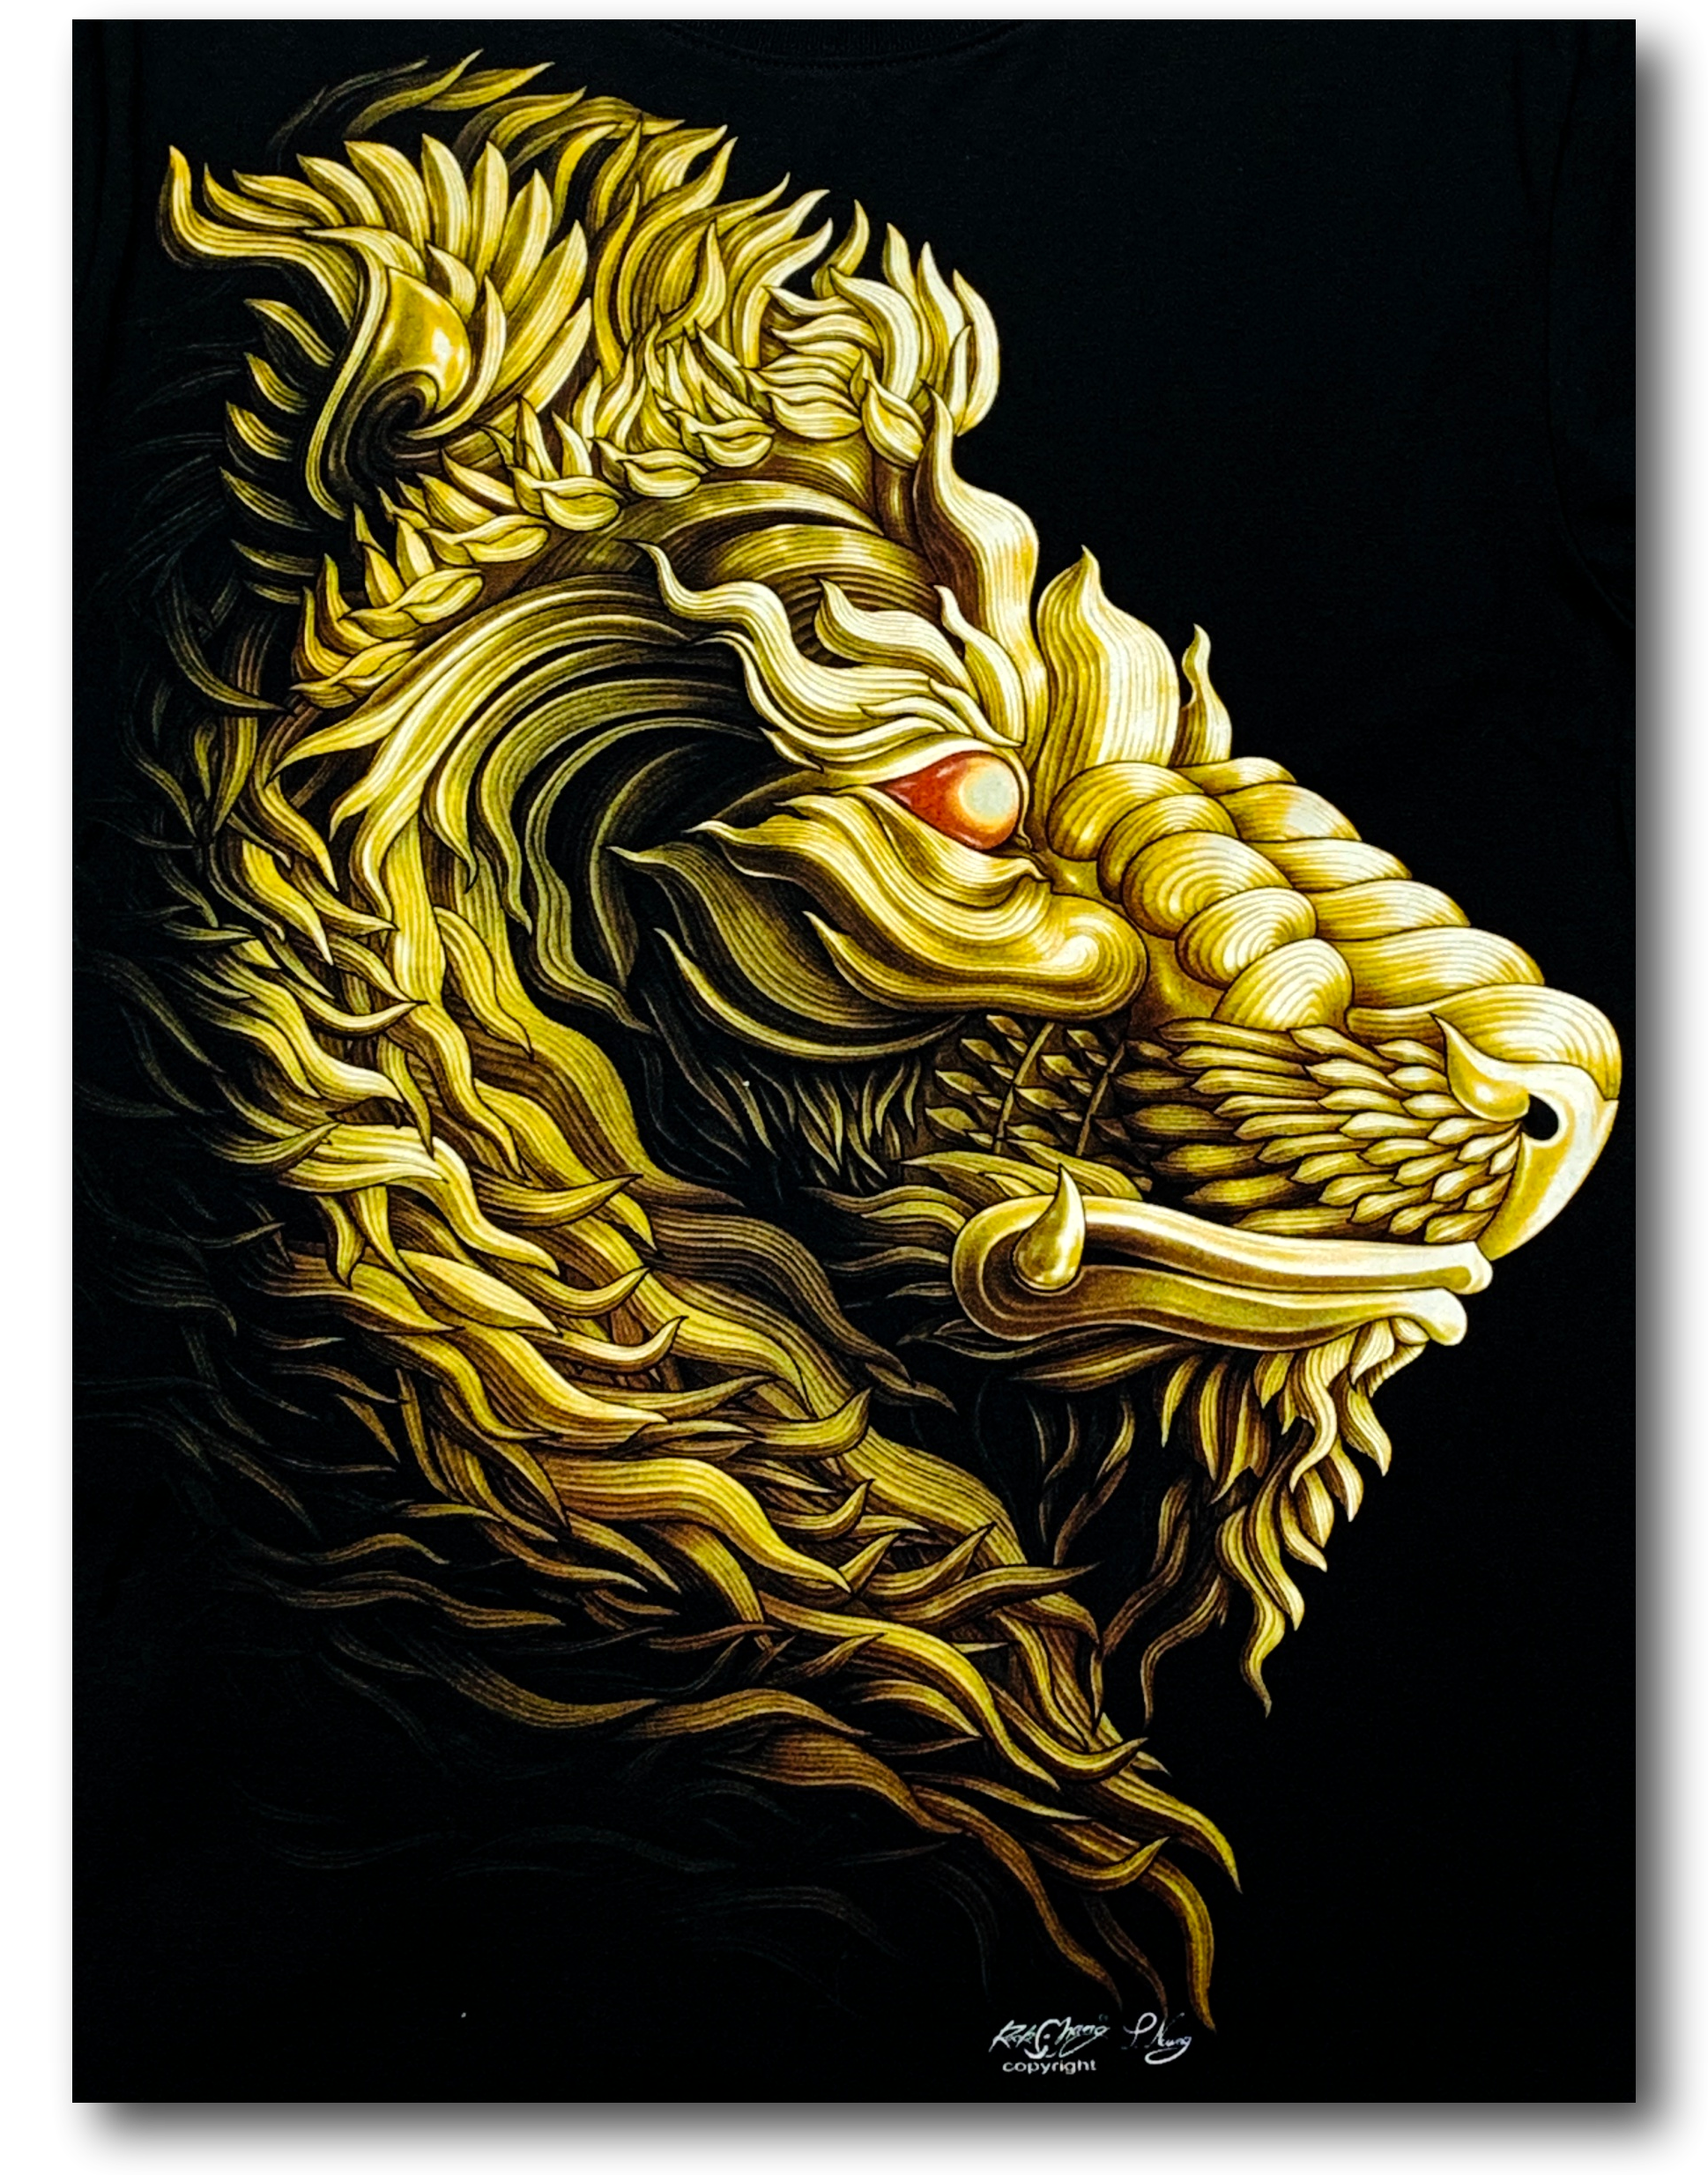 Tatoo Lion Head Glow in the Dark HD Rock Chang T-Shirt